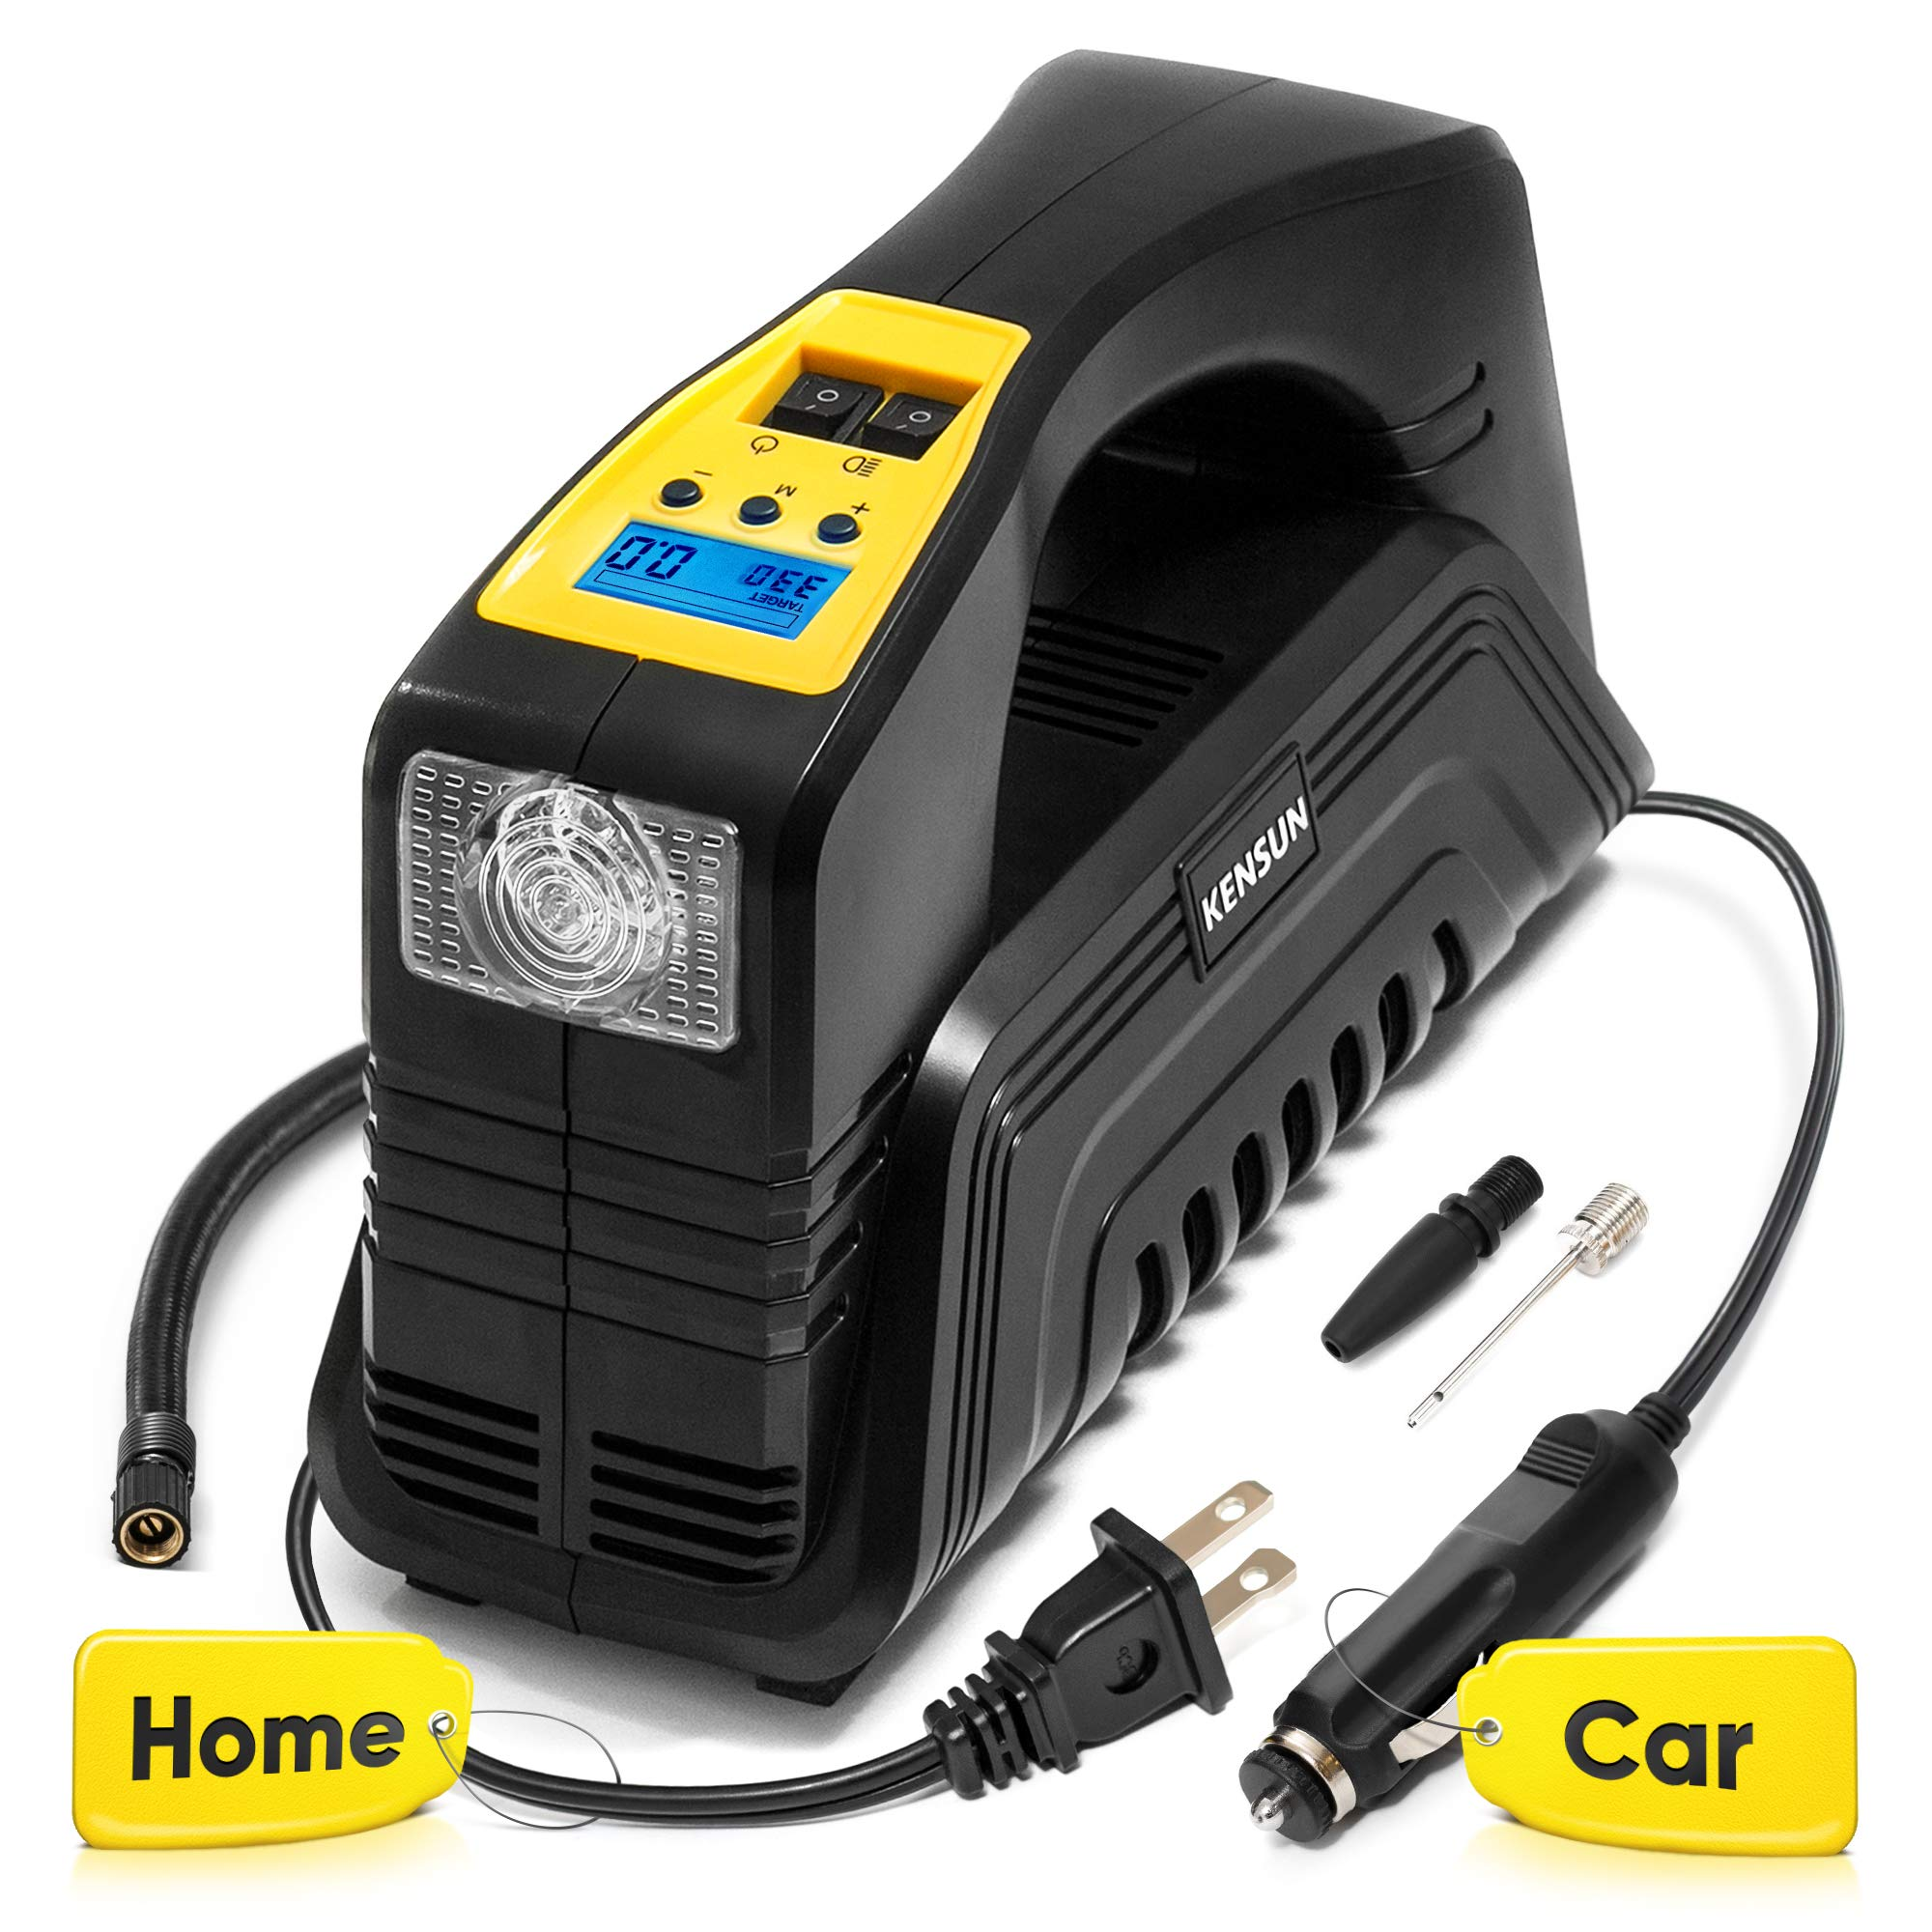 Kensun AC/DC Digital Tire Inflator for Car 12V DC and Home 110V AC Rapid Performance Portable Air Compressor Pump for Car, Bicycle, Motorcycle, Basketball and Others by Kensun